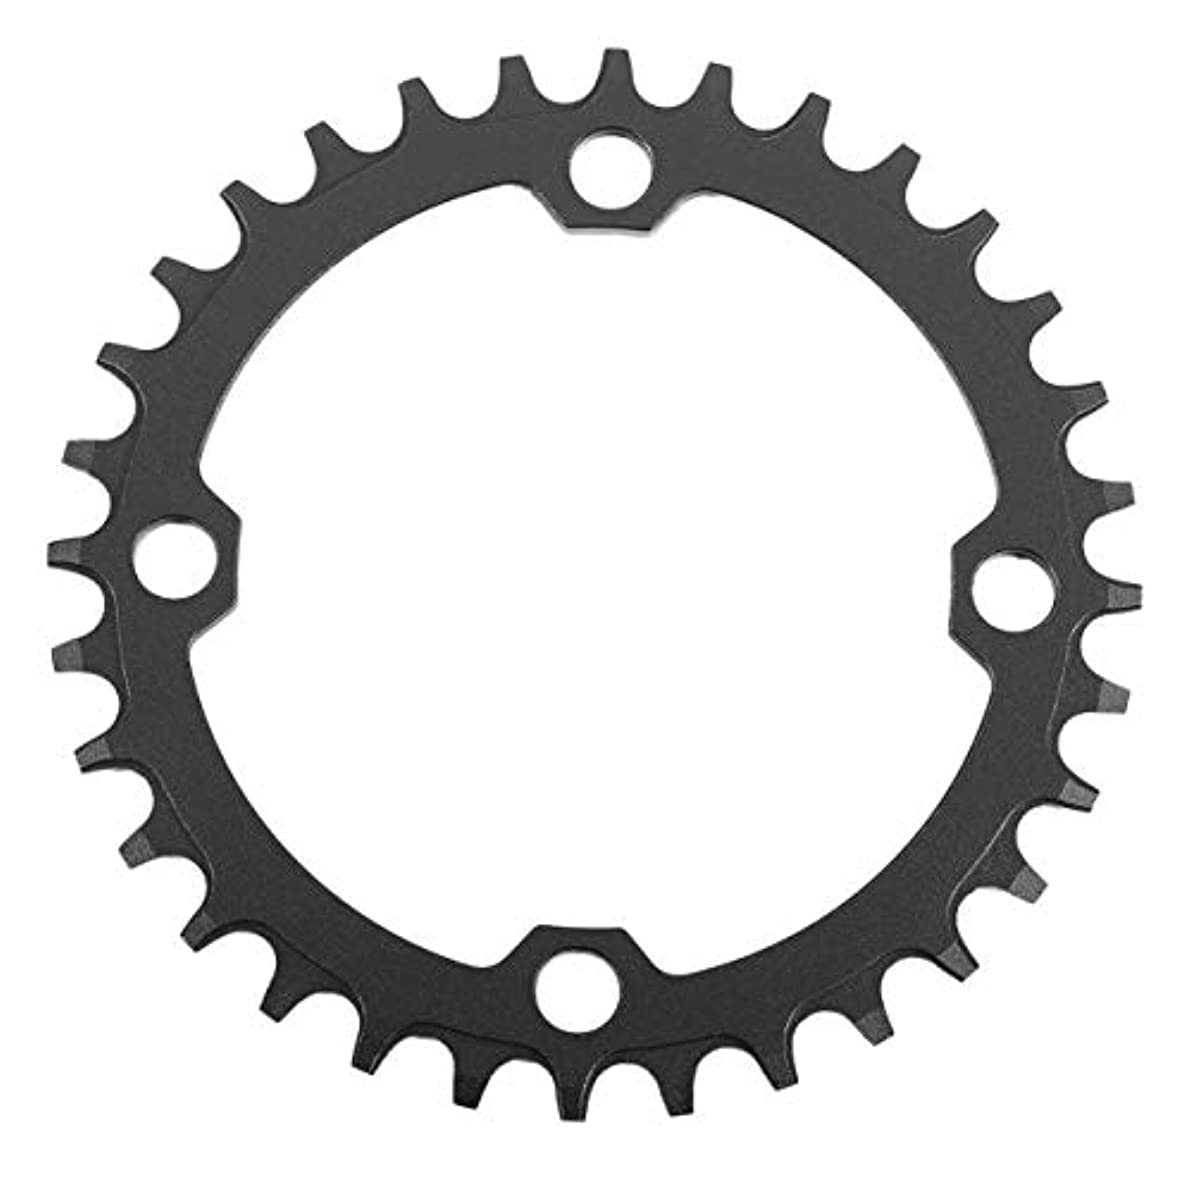 納屋科学者オーバーコートDECKAS Narrow Wide Bike MTB Crank Round Oval Chainring Chain Ring自転車Chainwheel Bike Circle Single Plate-ブラック